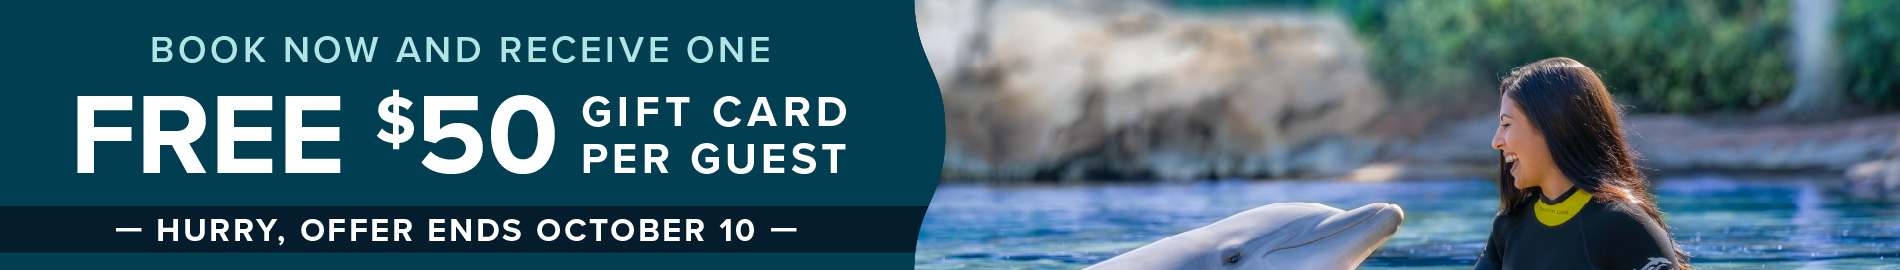 Discovery Cove Gift Card Promotion